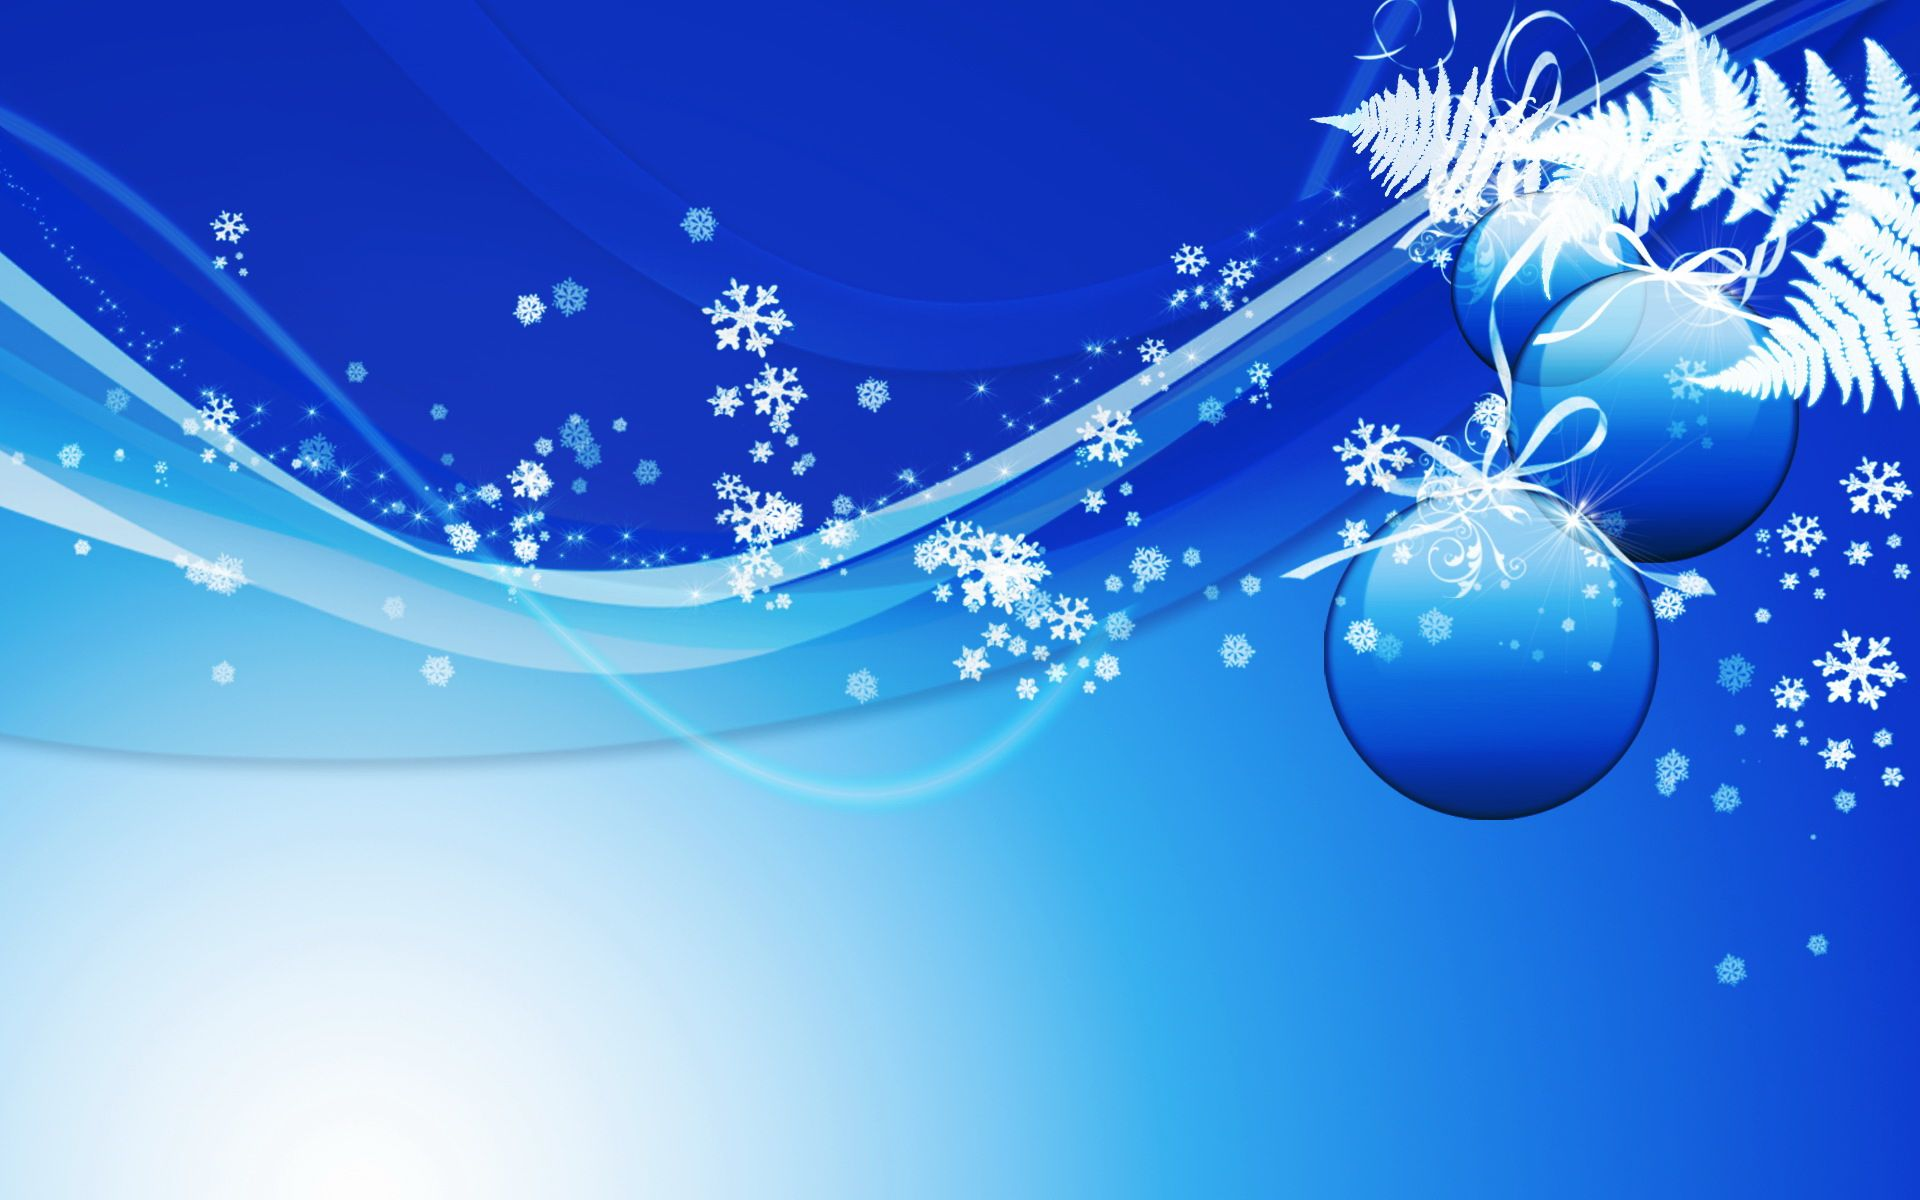 Among All The Big Festive Events Christmas Is One Of Them Which Is Celebrated By The Blue Christmas Blue Christmas Background Christmas Wallpaper Backgrounds